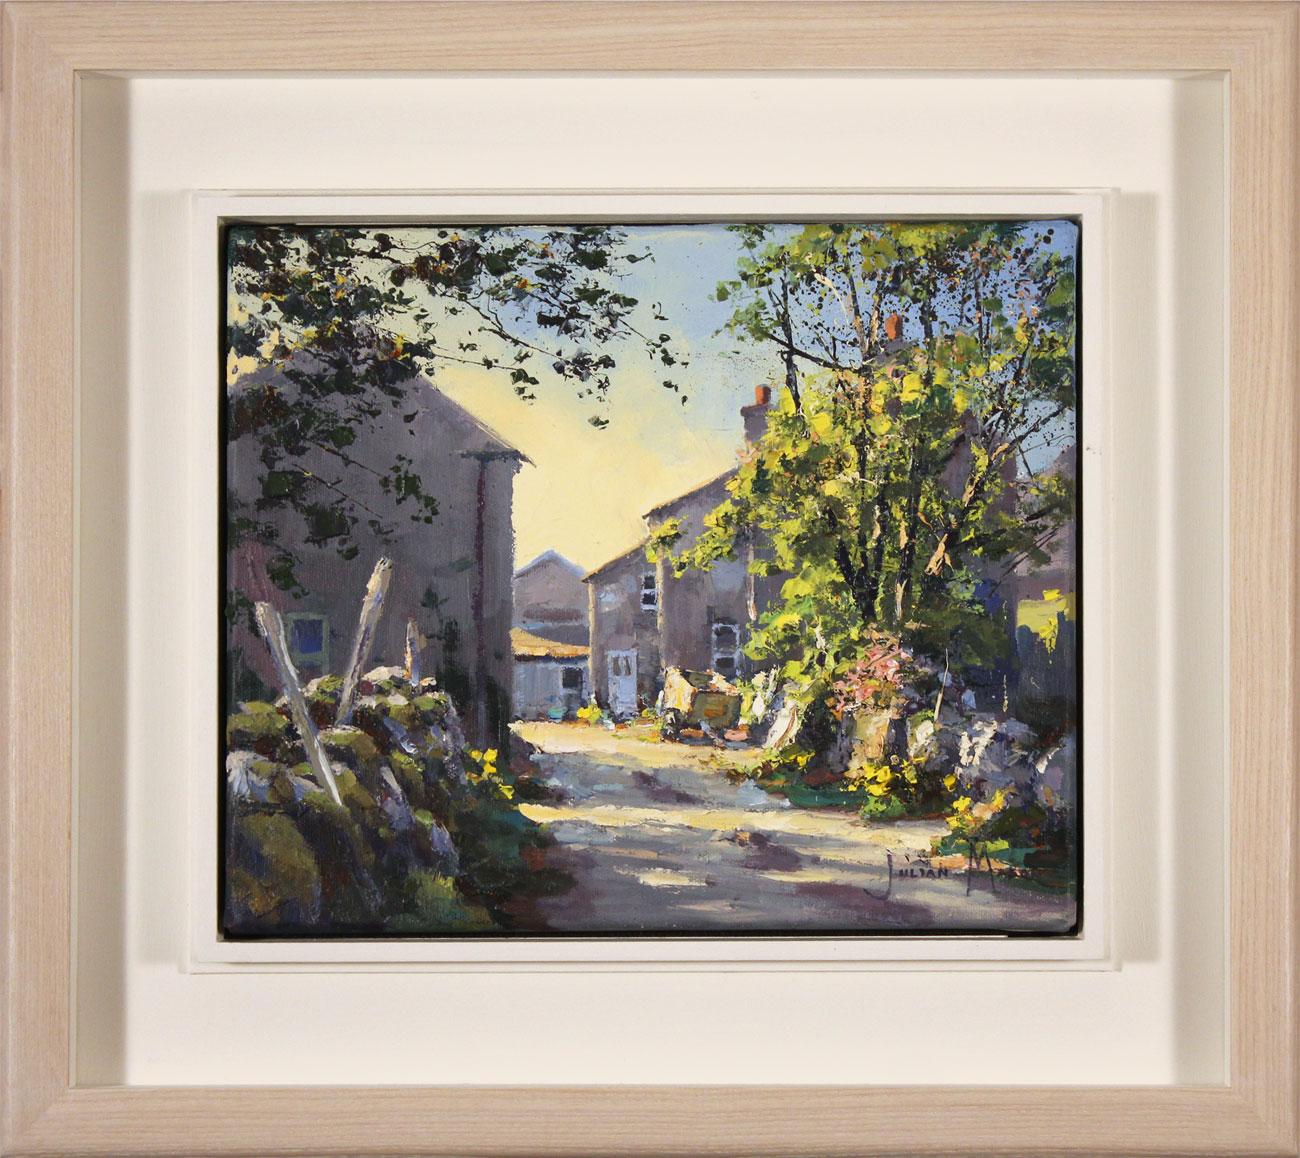 Julian Mason, Original oil painting on canvas, Spring at Beckermonds, click to enlarge